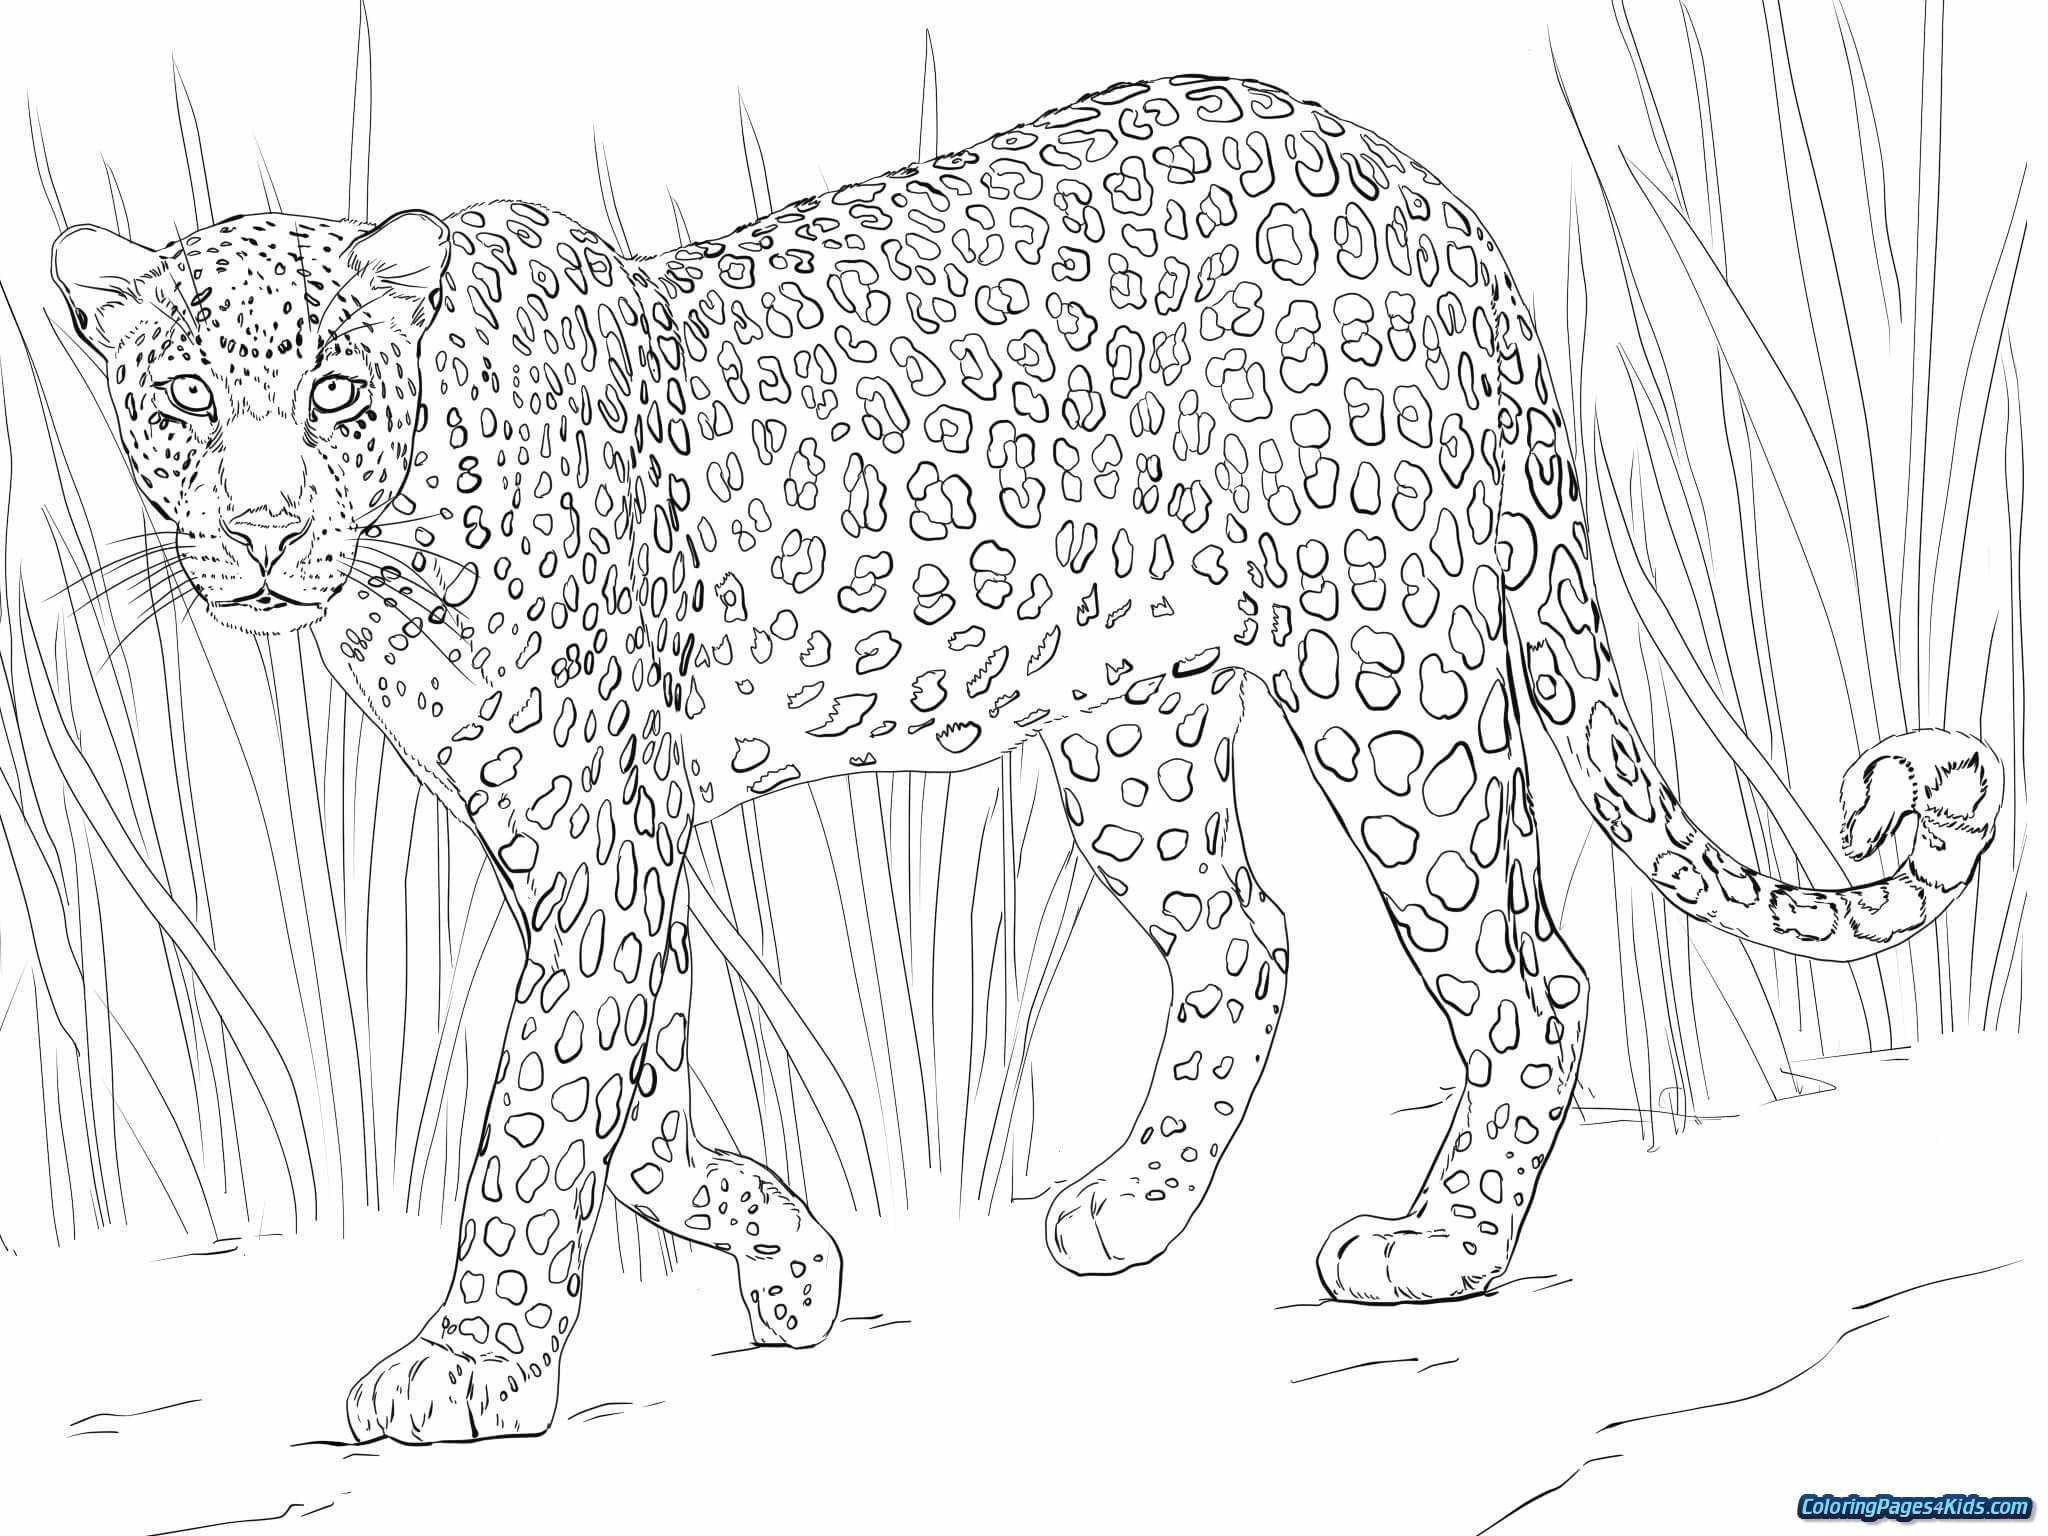 Animal Jam Coloring Pages Inspirational Inspirational Snow Leopard Coloring Page Nocn African Leopard Coloring Pages Animal Coloring Pages